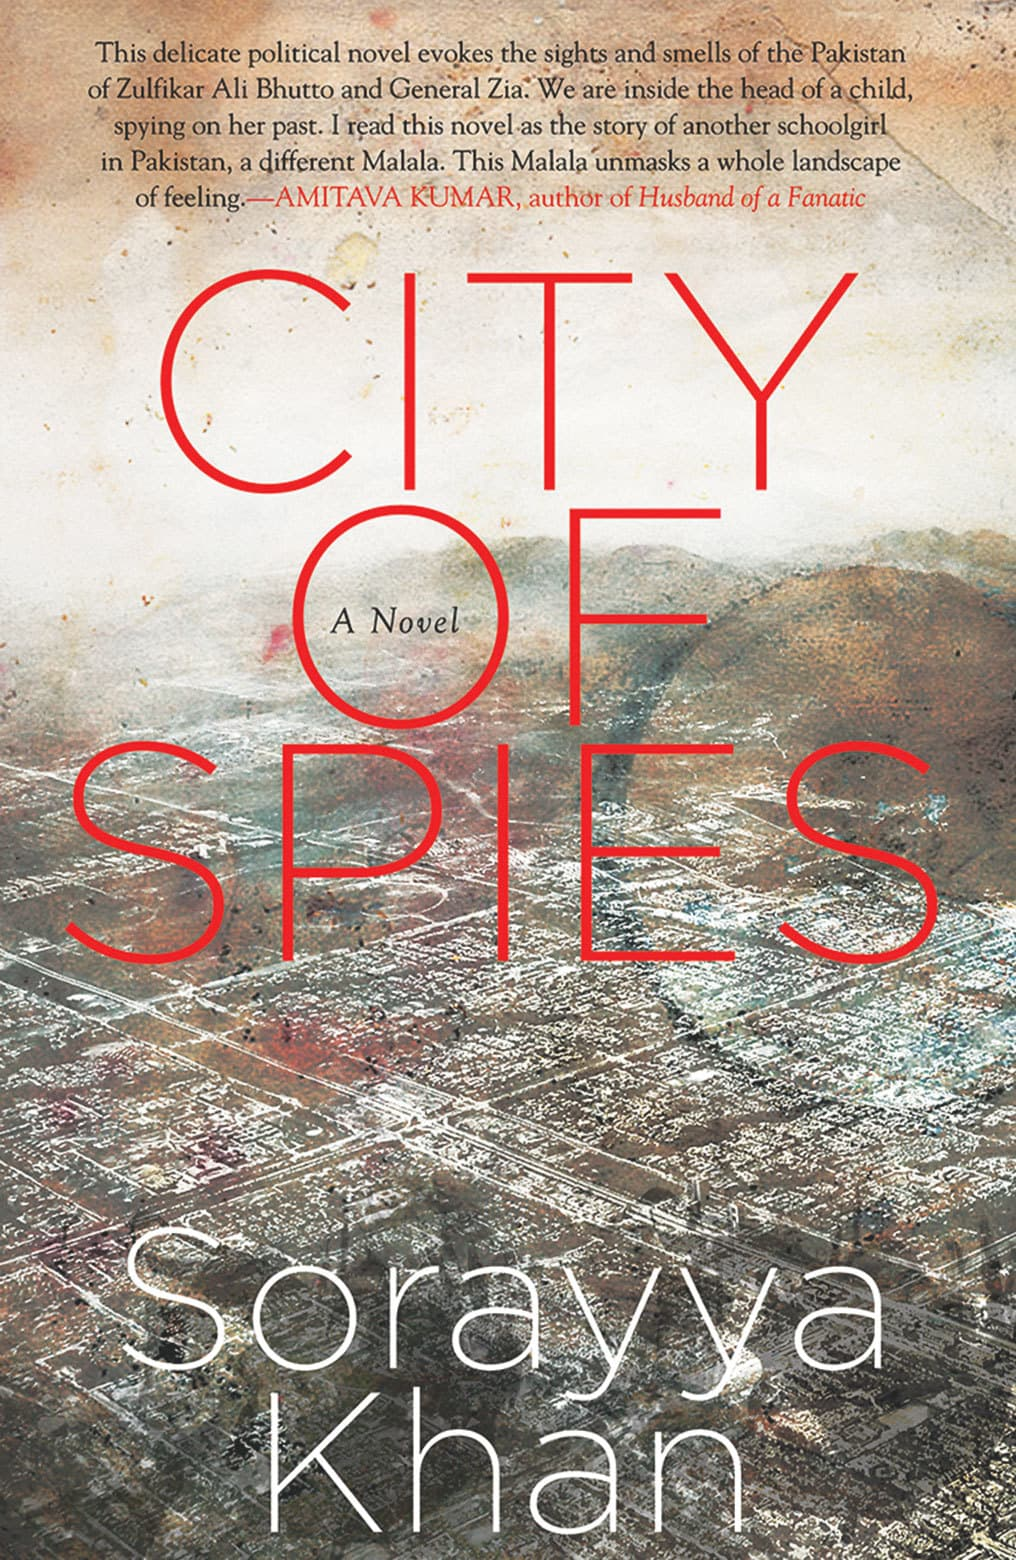 City of Spies  By Sorayya Khan